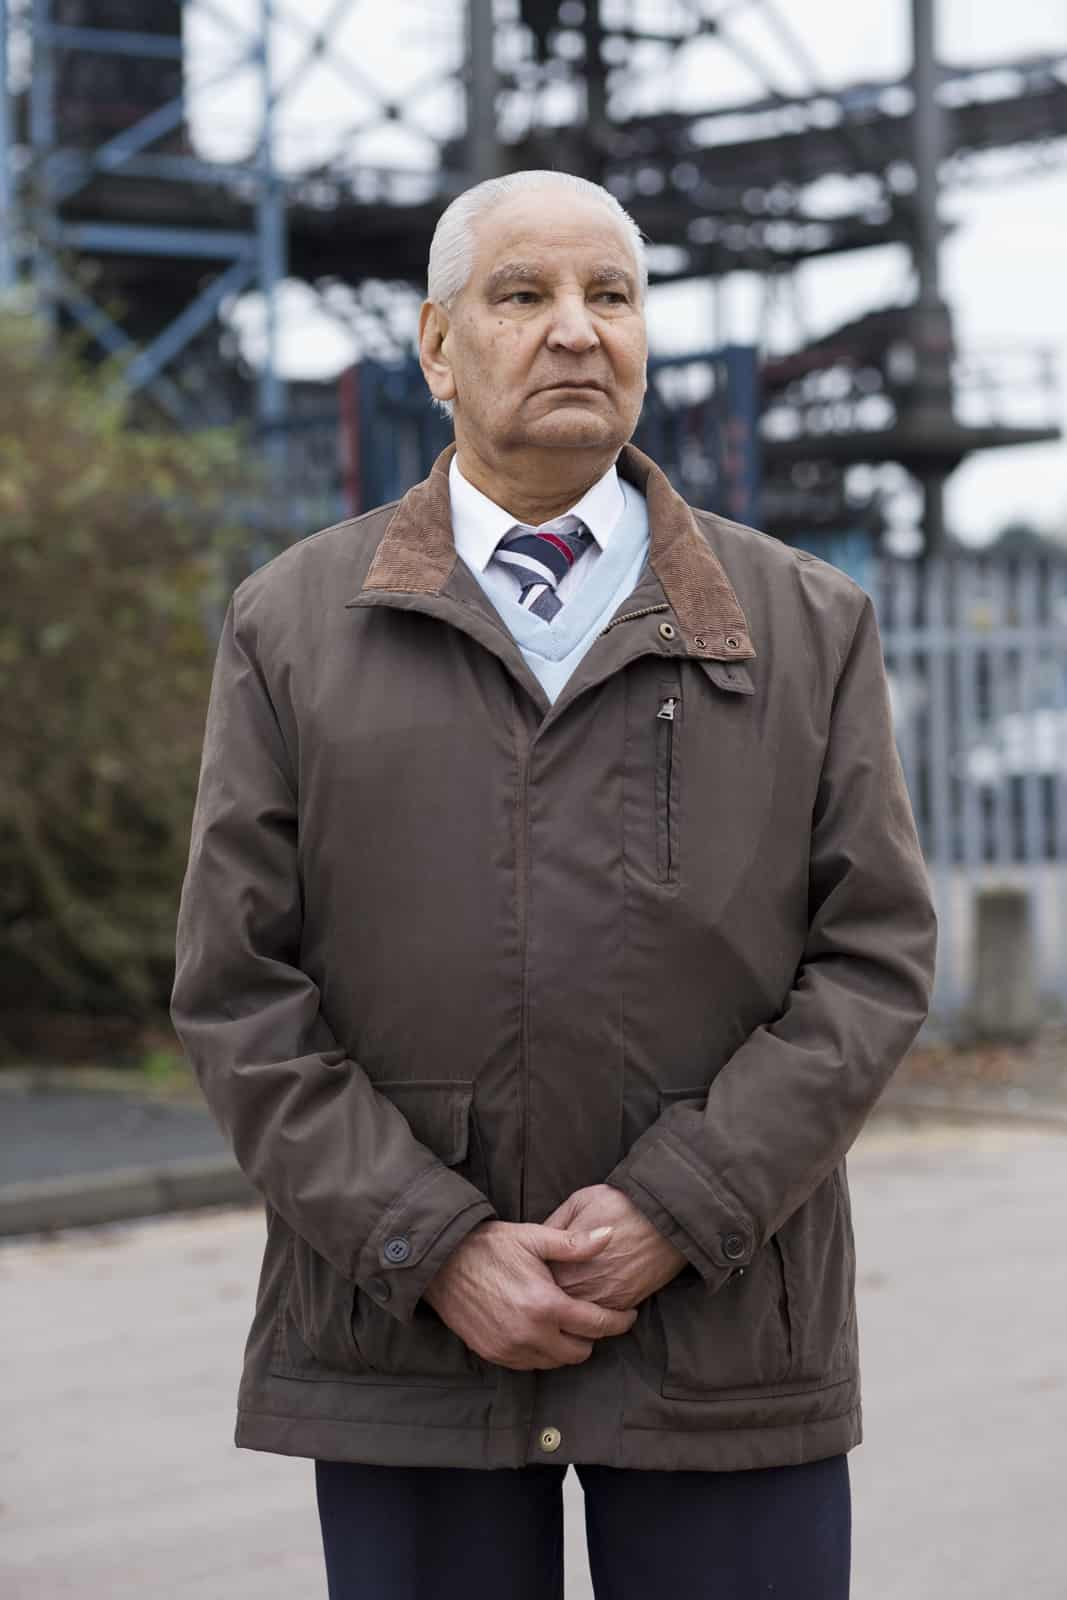 Gurdev Rai (retired) stands outside the Goodyear factory on Stafford Rd , Wolverhampton on a cold 20th December 2016 to support workers leaving on the sad day of the factory's closure. As workers came out one of them included his own son Baljinder Rai for whom he successfully got a job at the plant in 1980, it was an incredibly moving moment in time for all involved.